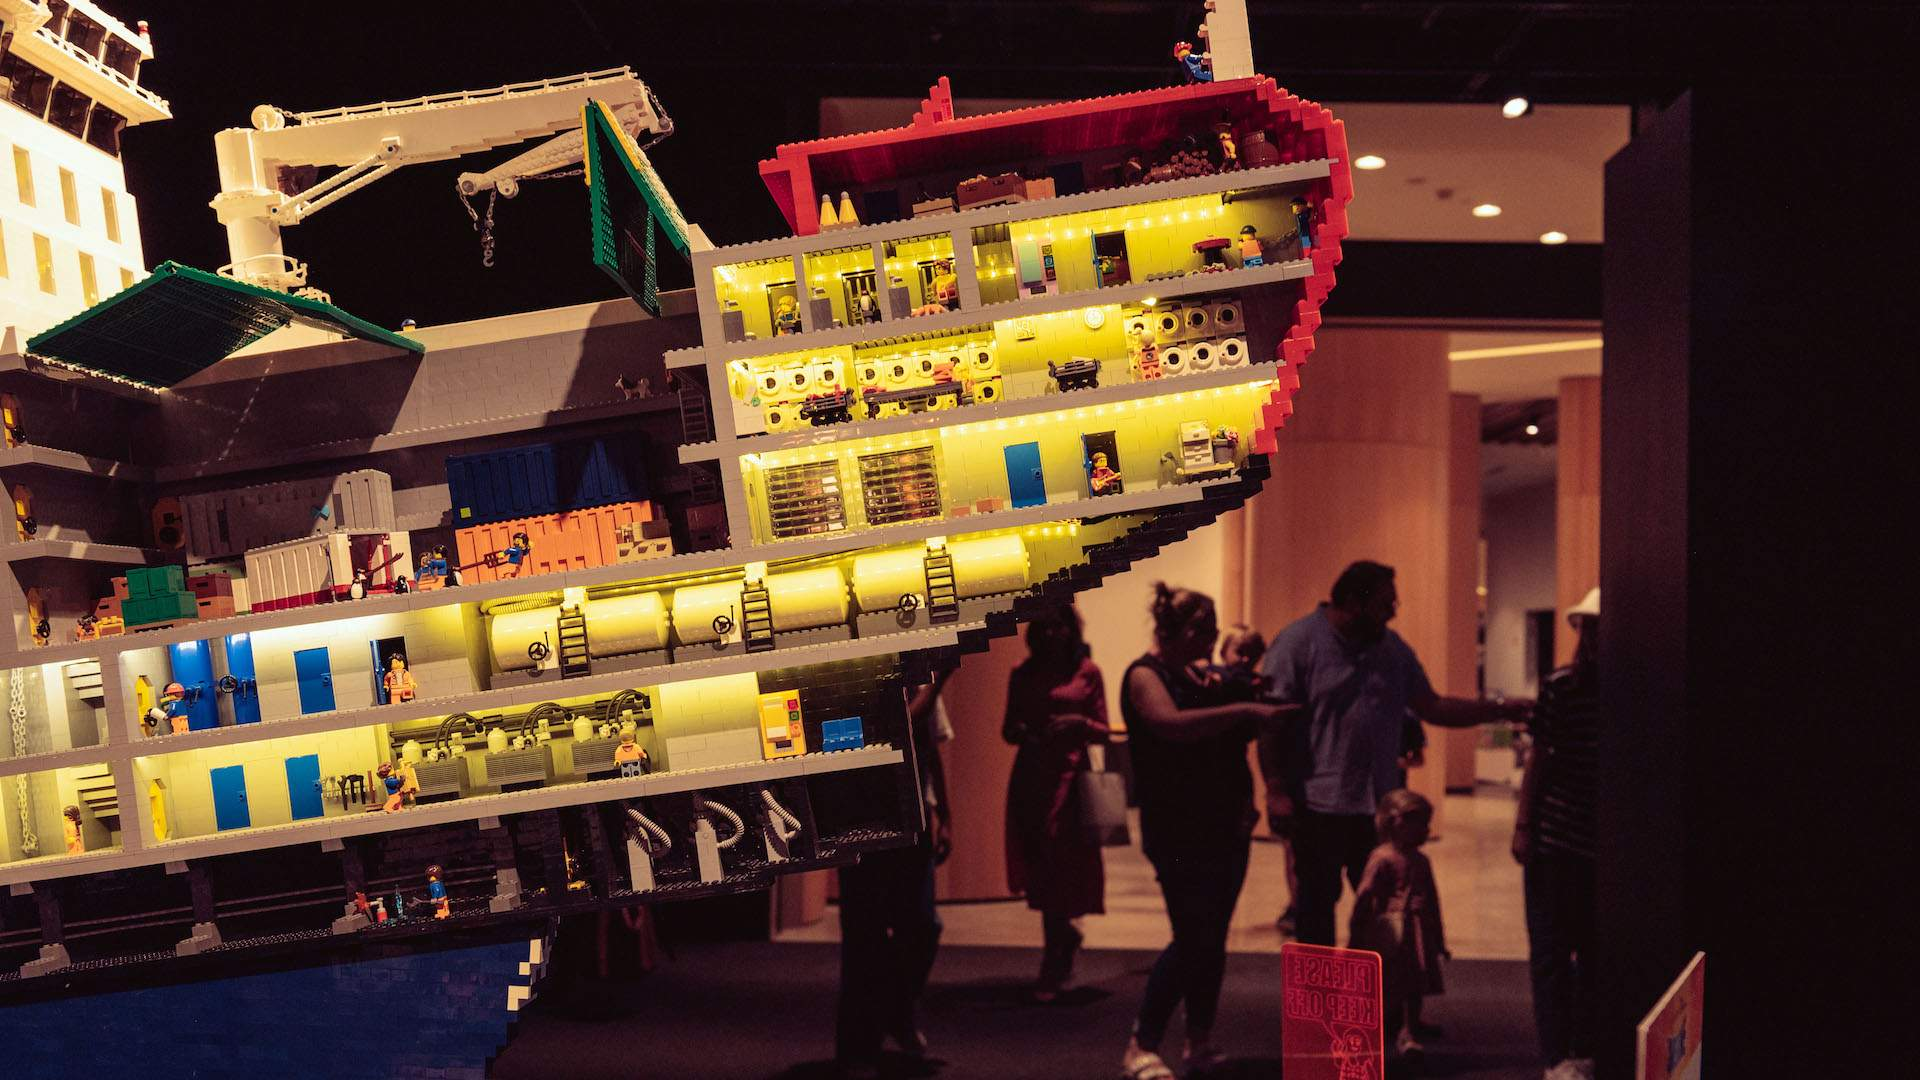 Brickman Awesome: Epic Lego Creations